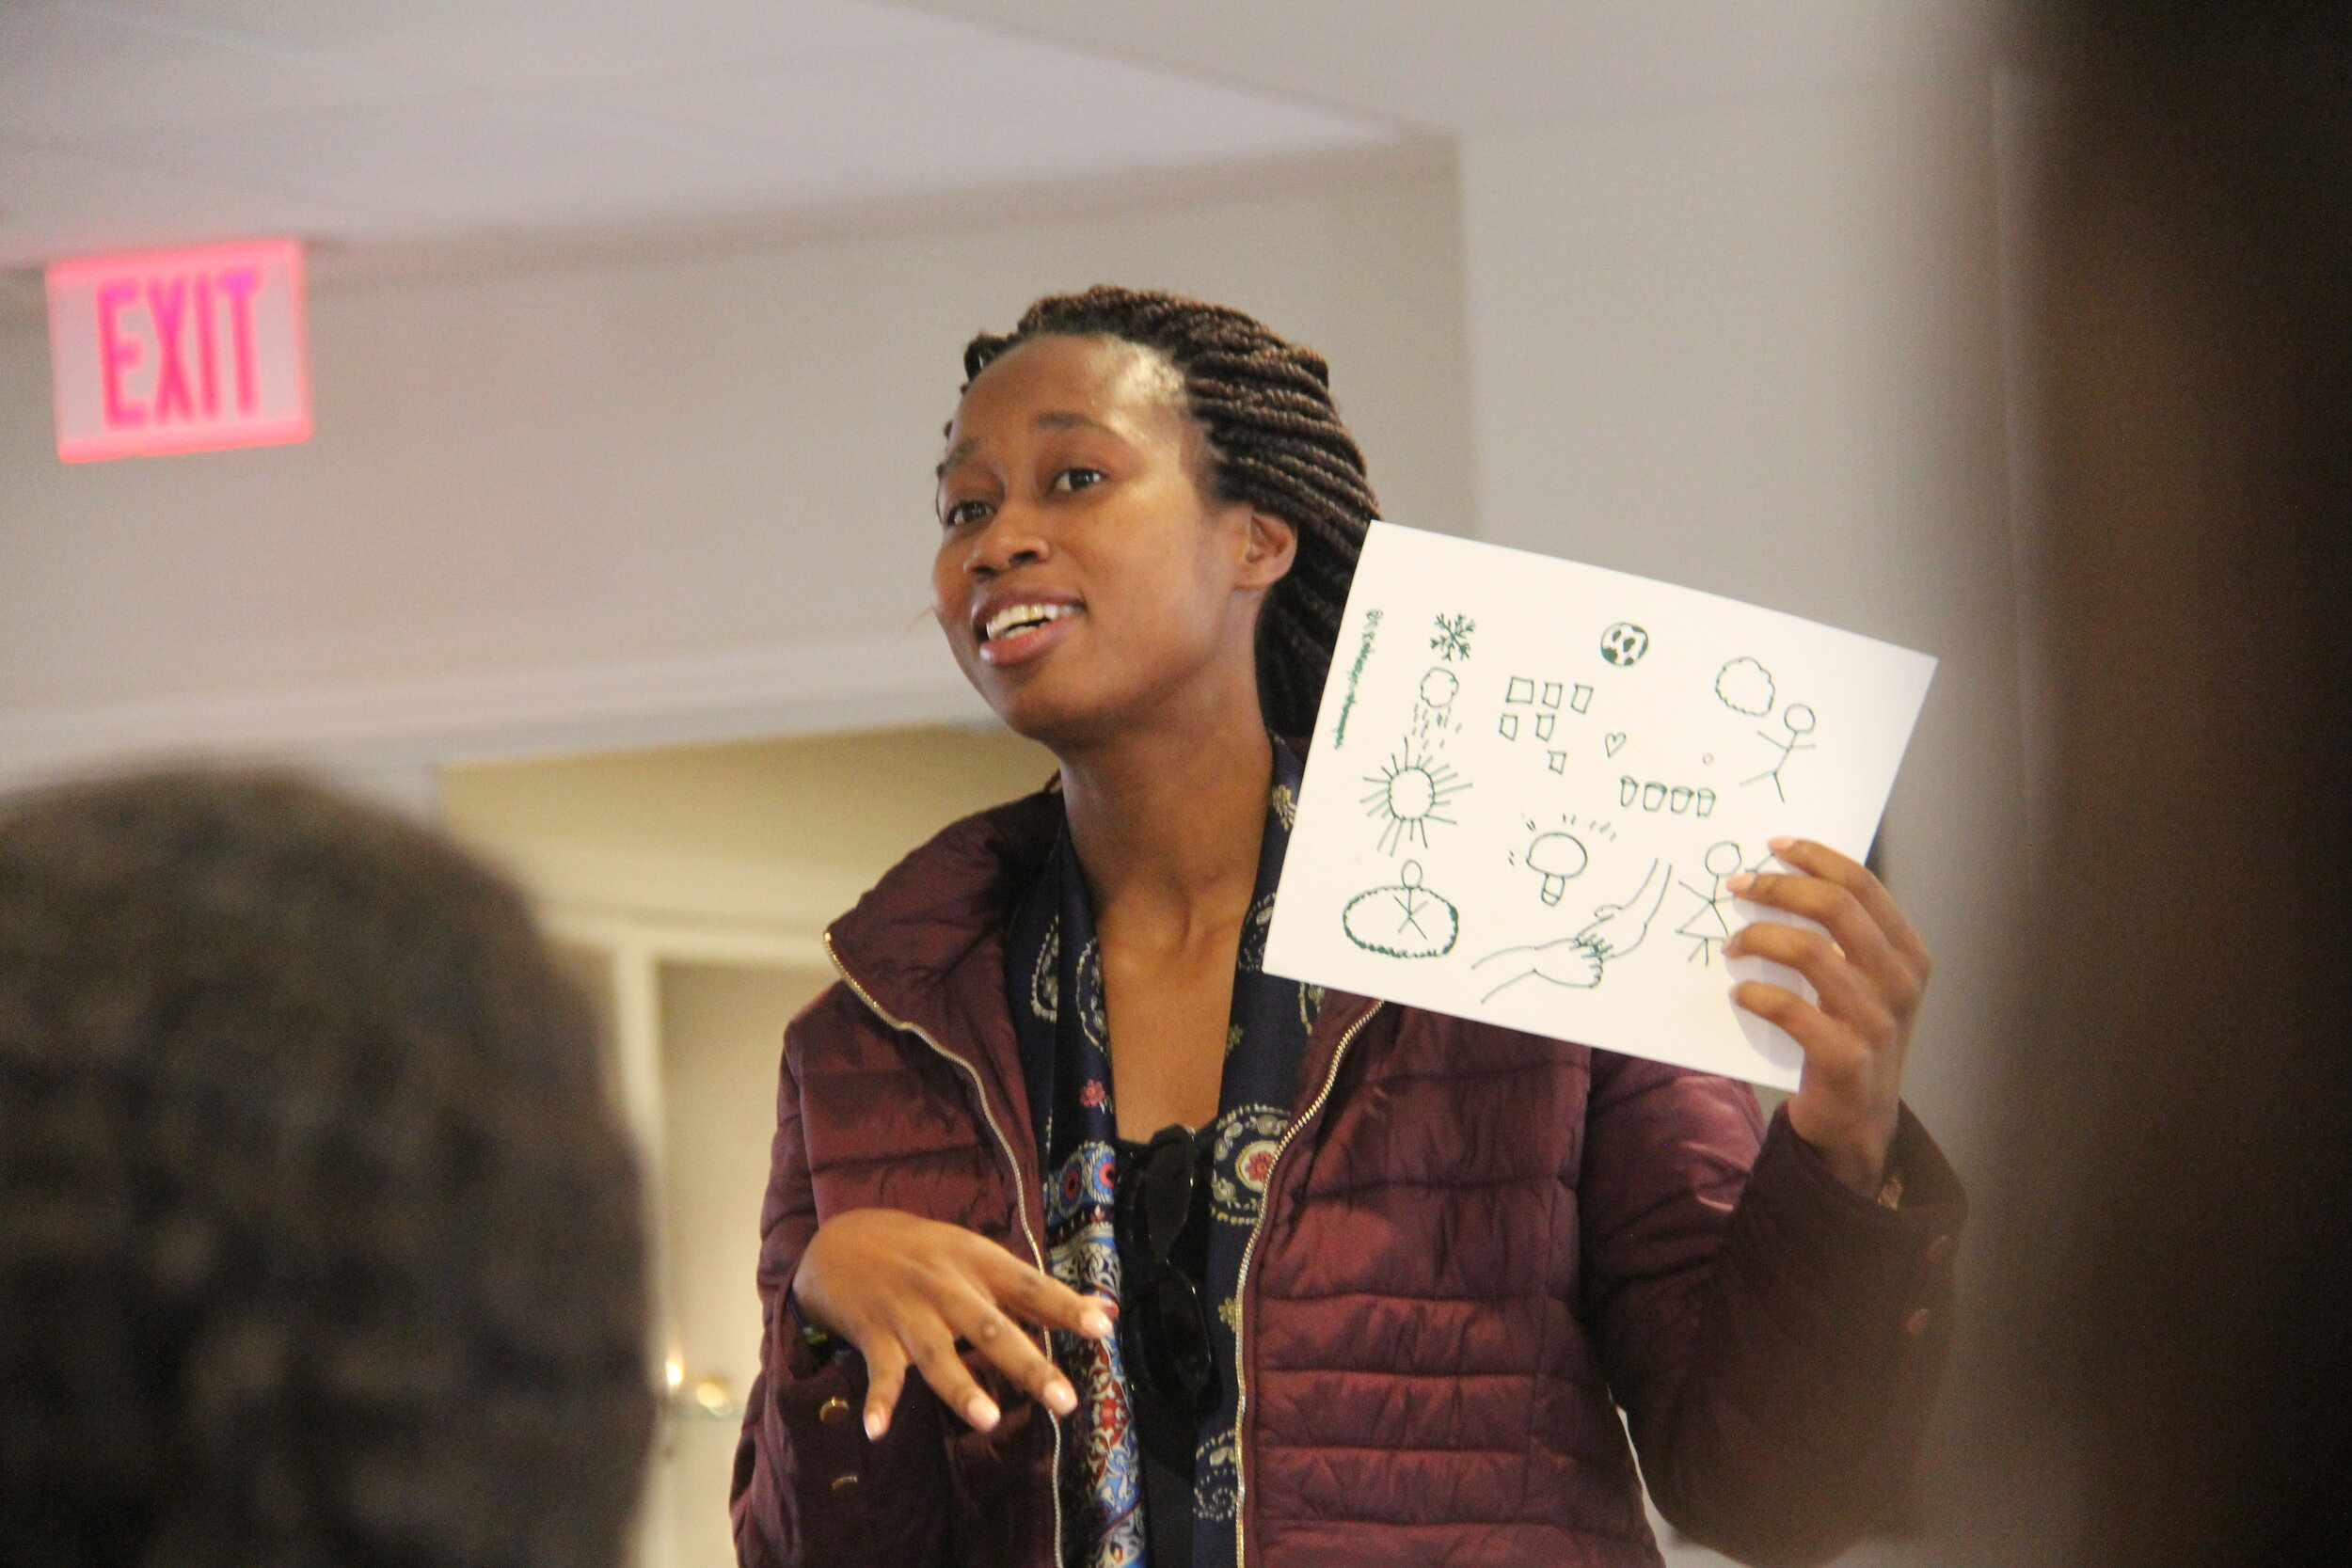 A delegate presenting during a quick brainstorming session at the summit.